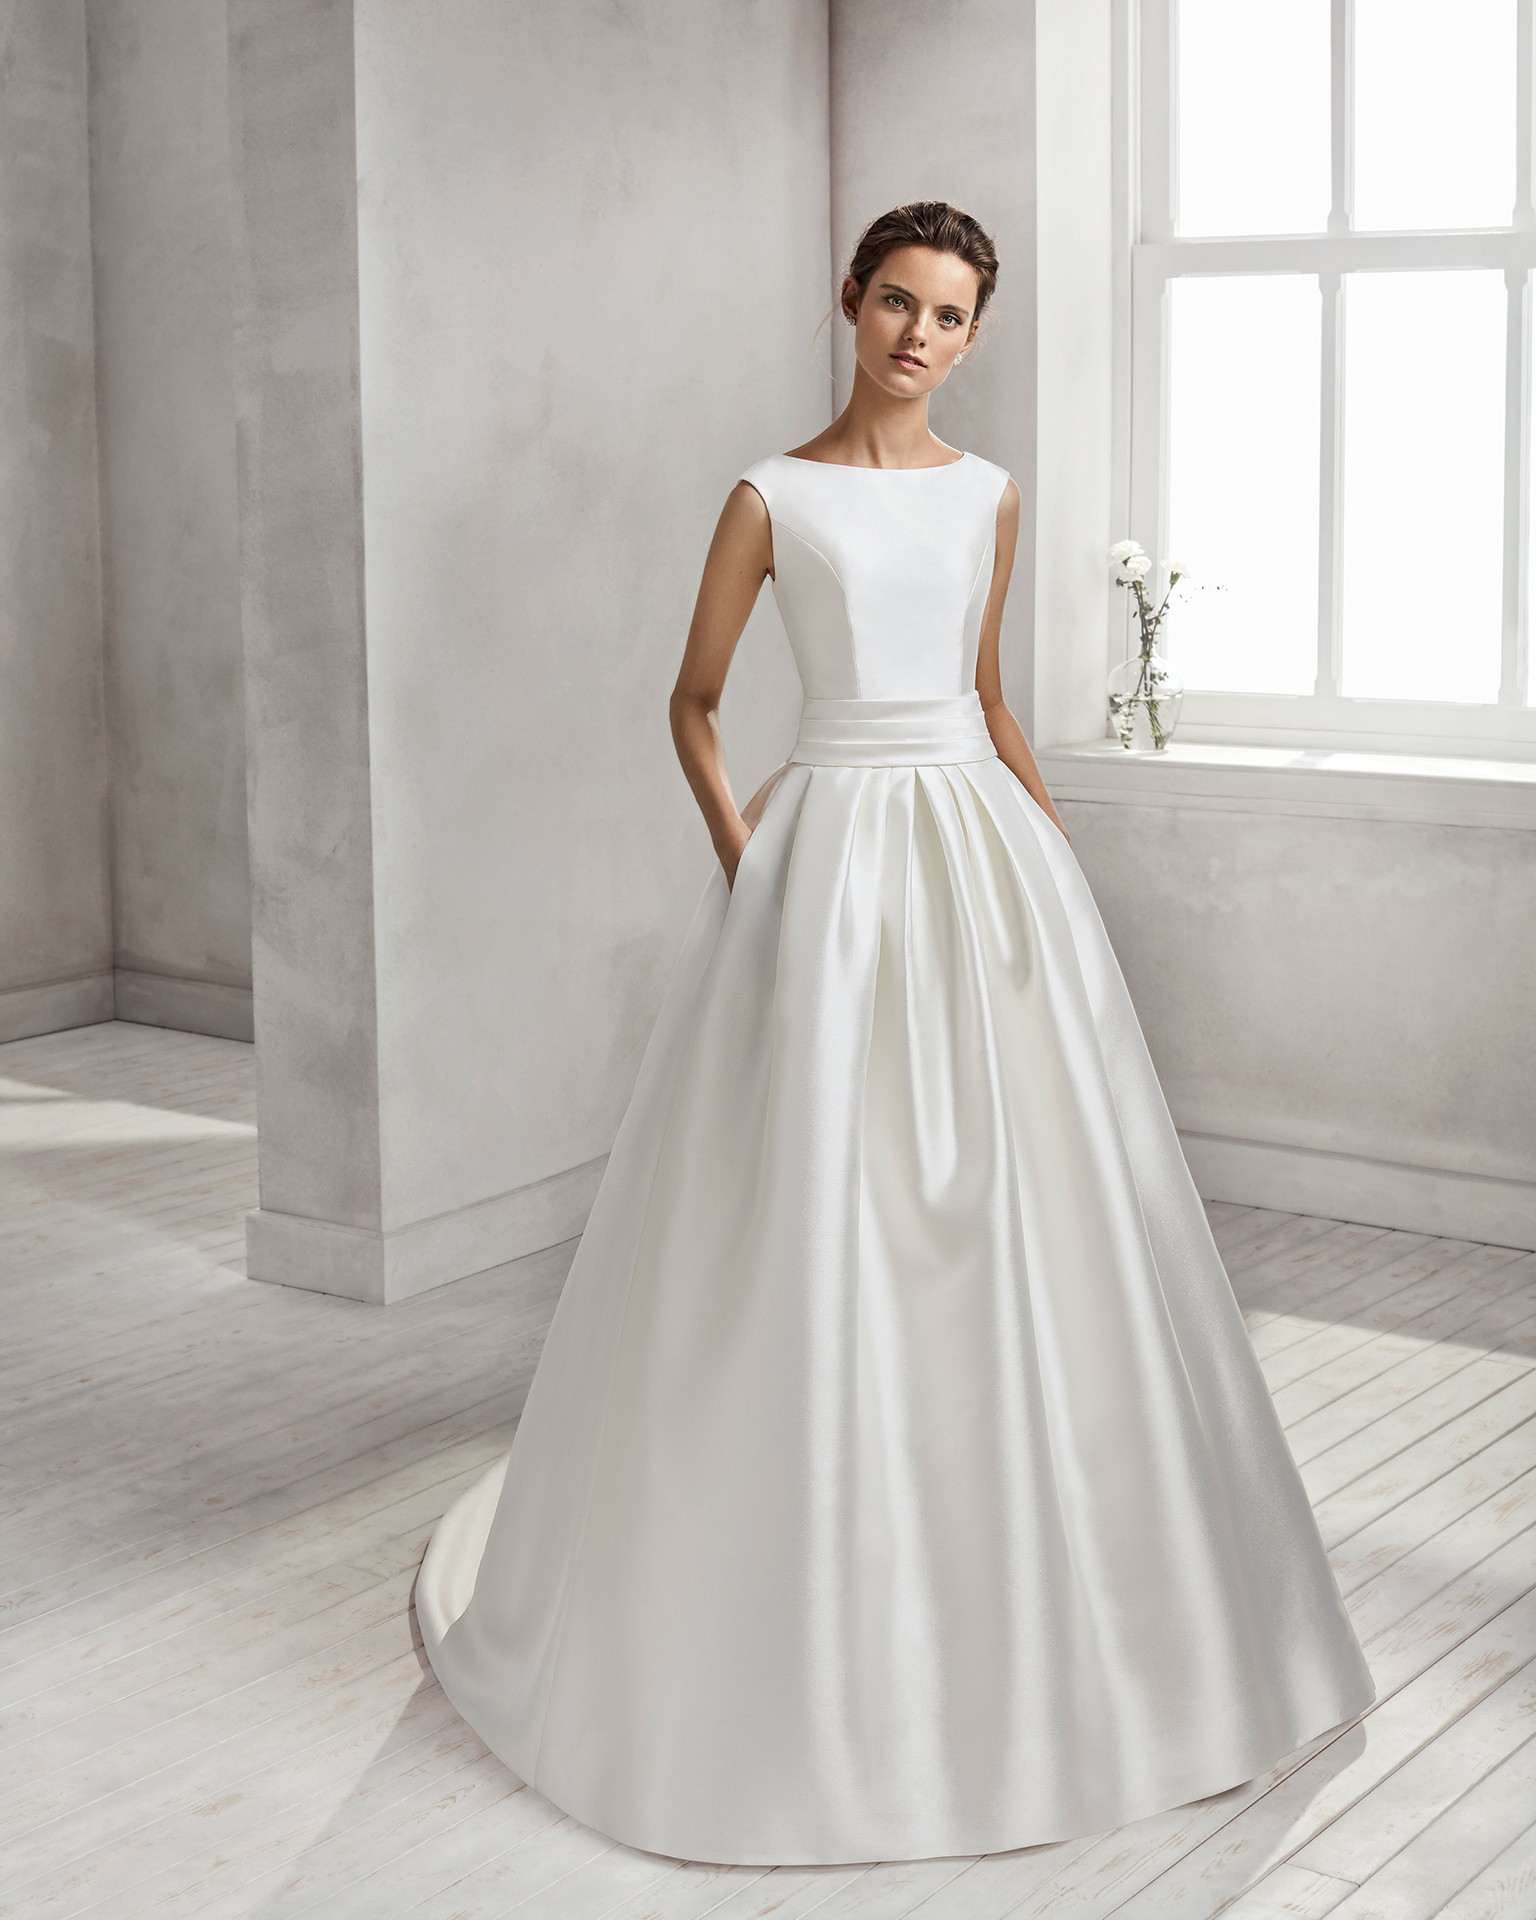 Classic-style mikado wedding dress with bateau neckline and open back with bow.